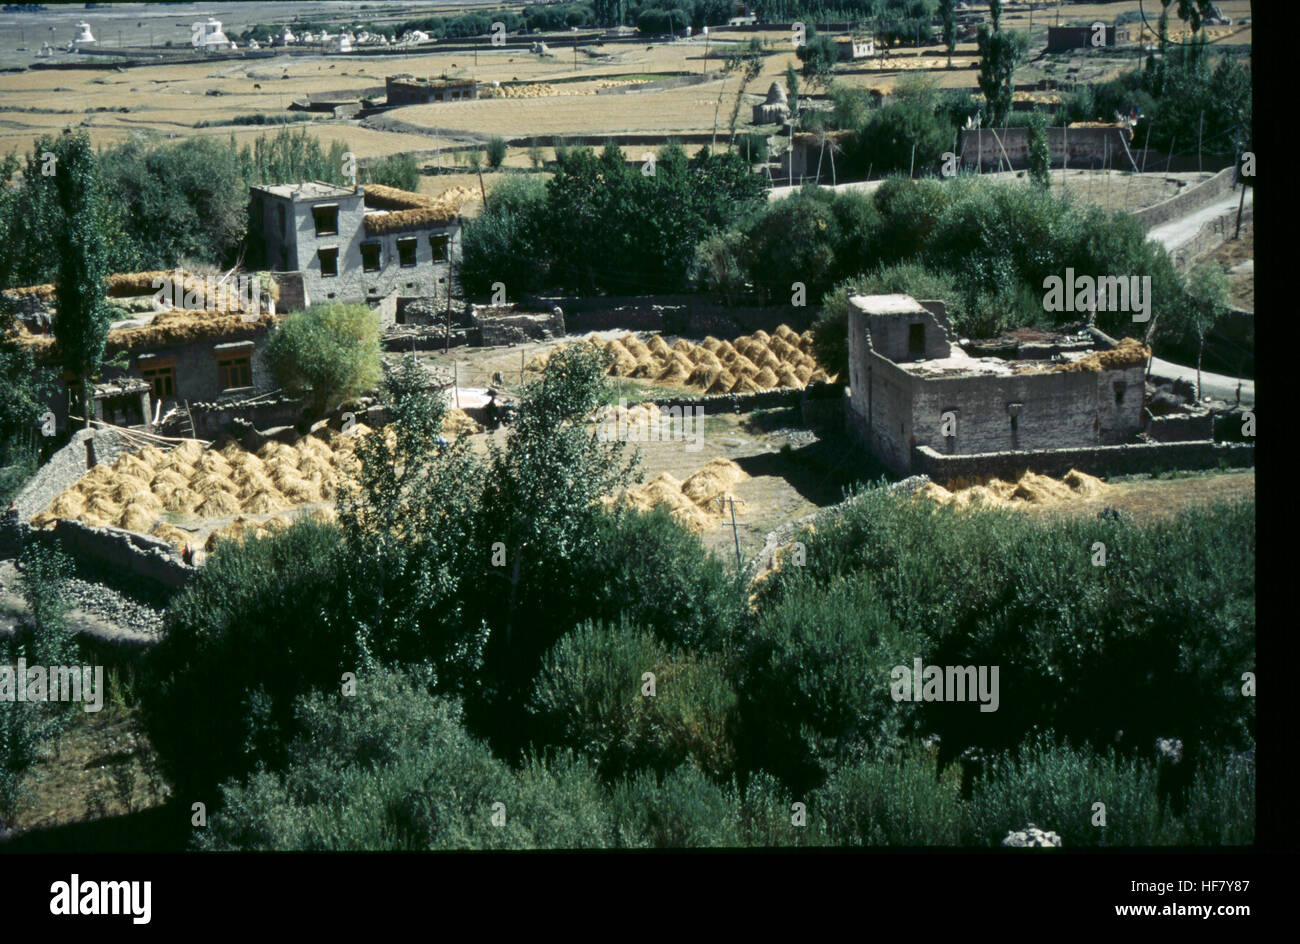 Barley harvest time in the village of Stok, seen from the Palace of Stok; near Leh, Ladakh, India.  Ladakhi houses - Stock Image